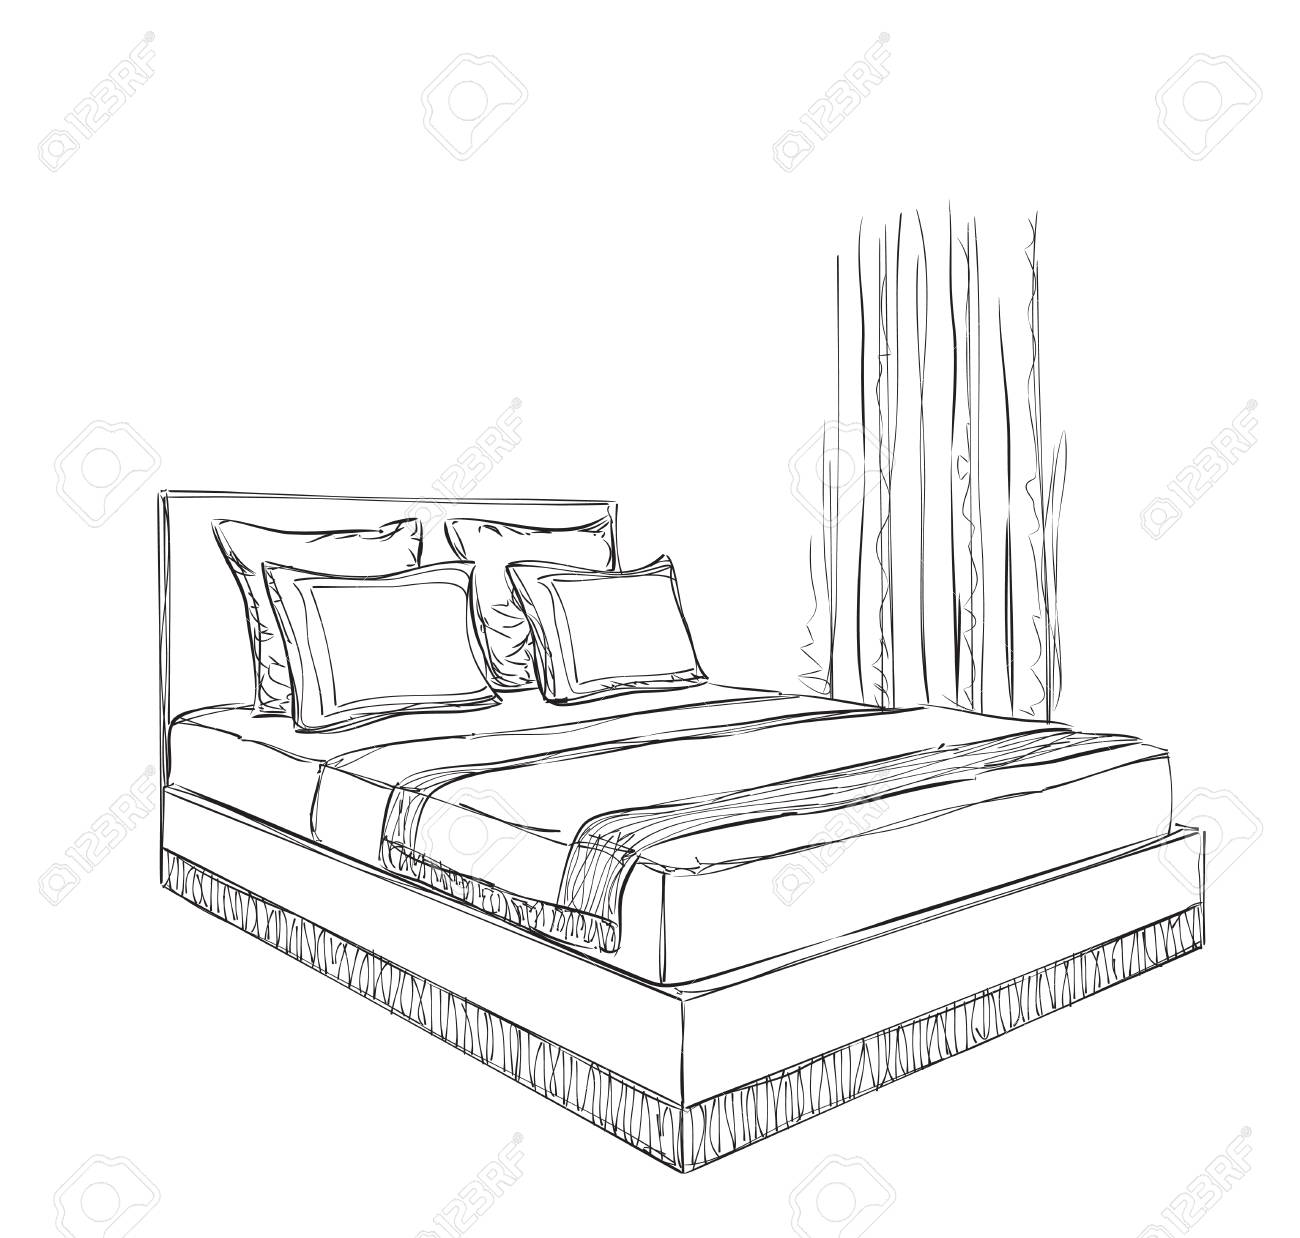 Interior design of the classic bedroom with double bed - 57445338